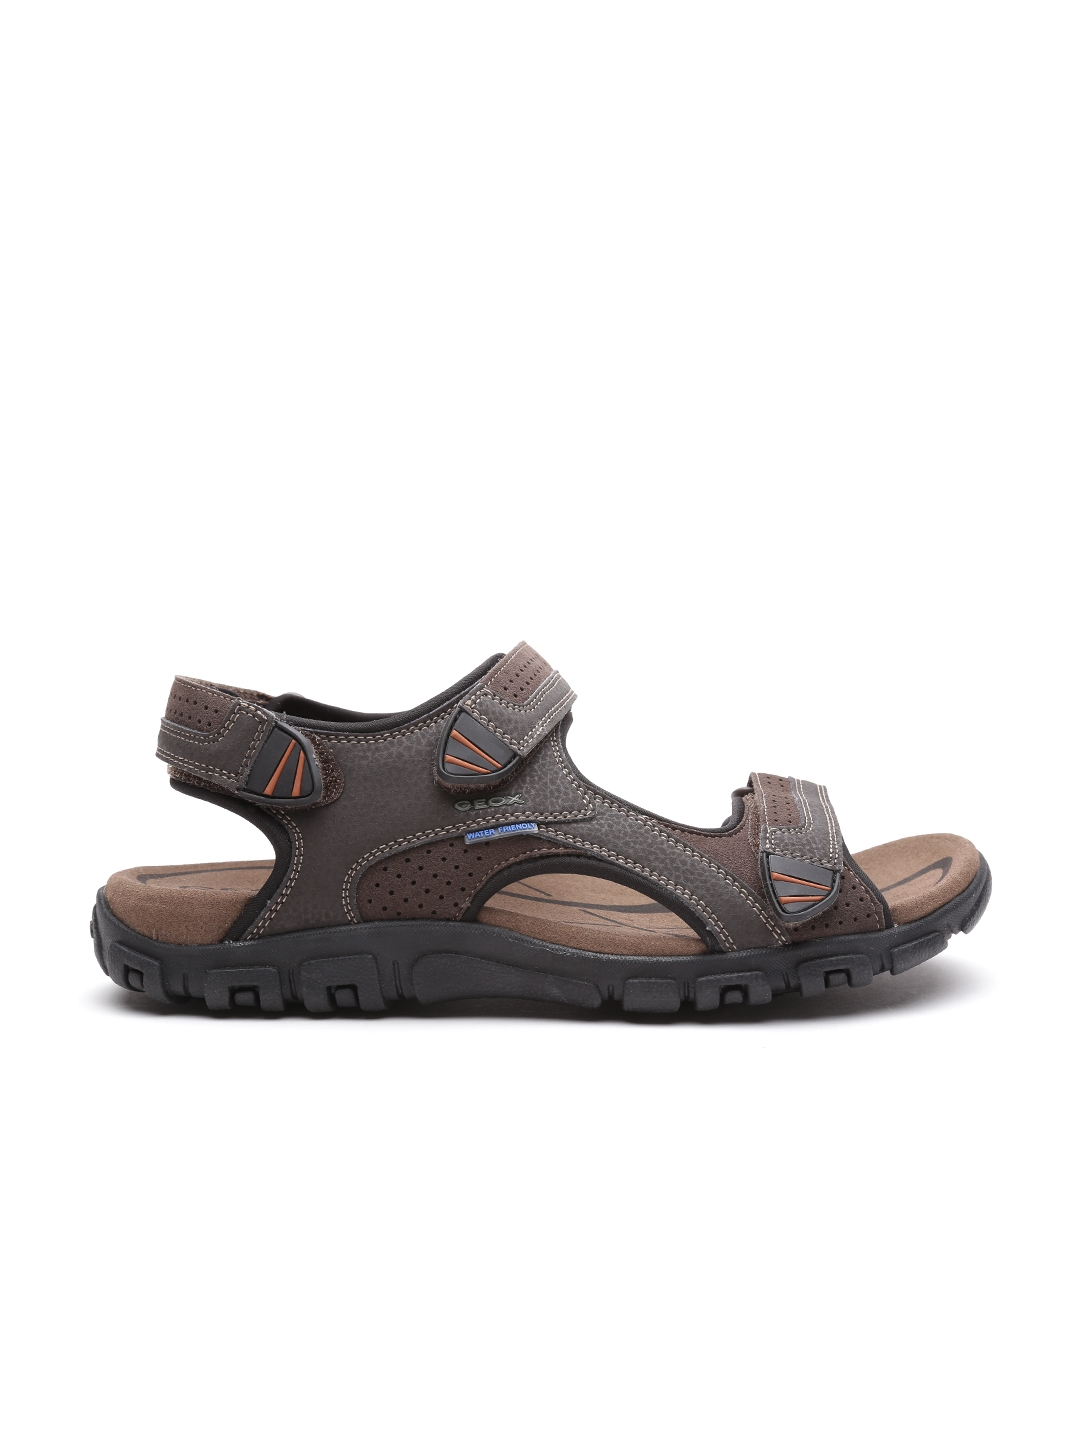 Buy Geox Italian 54l3arj Sandals Leather Patent Men Brown Respira dxWQCoreB